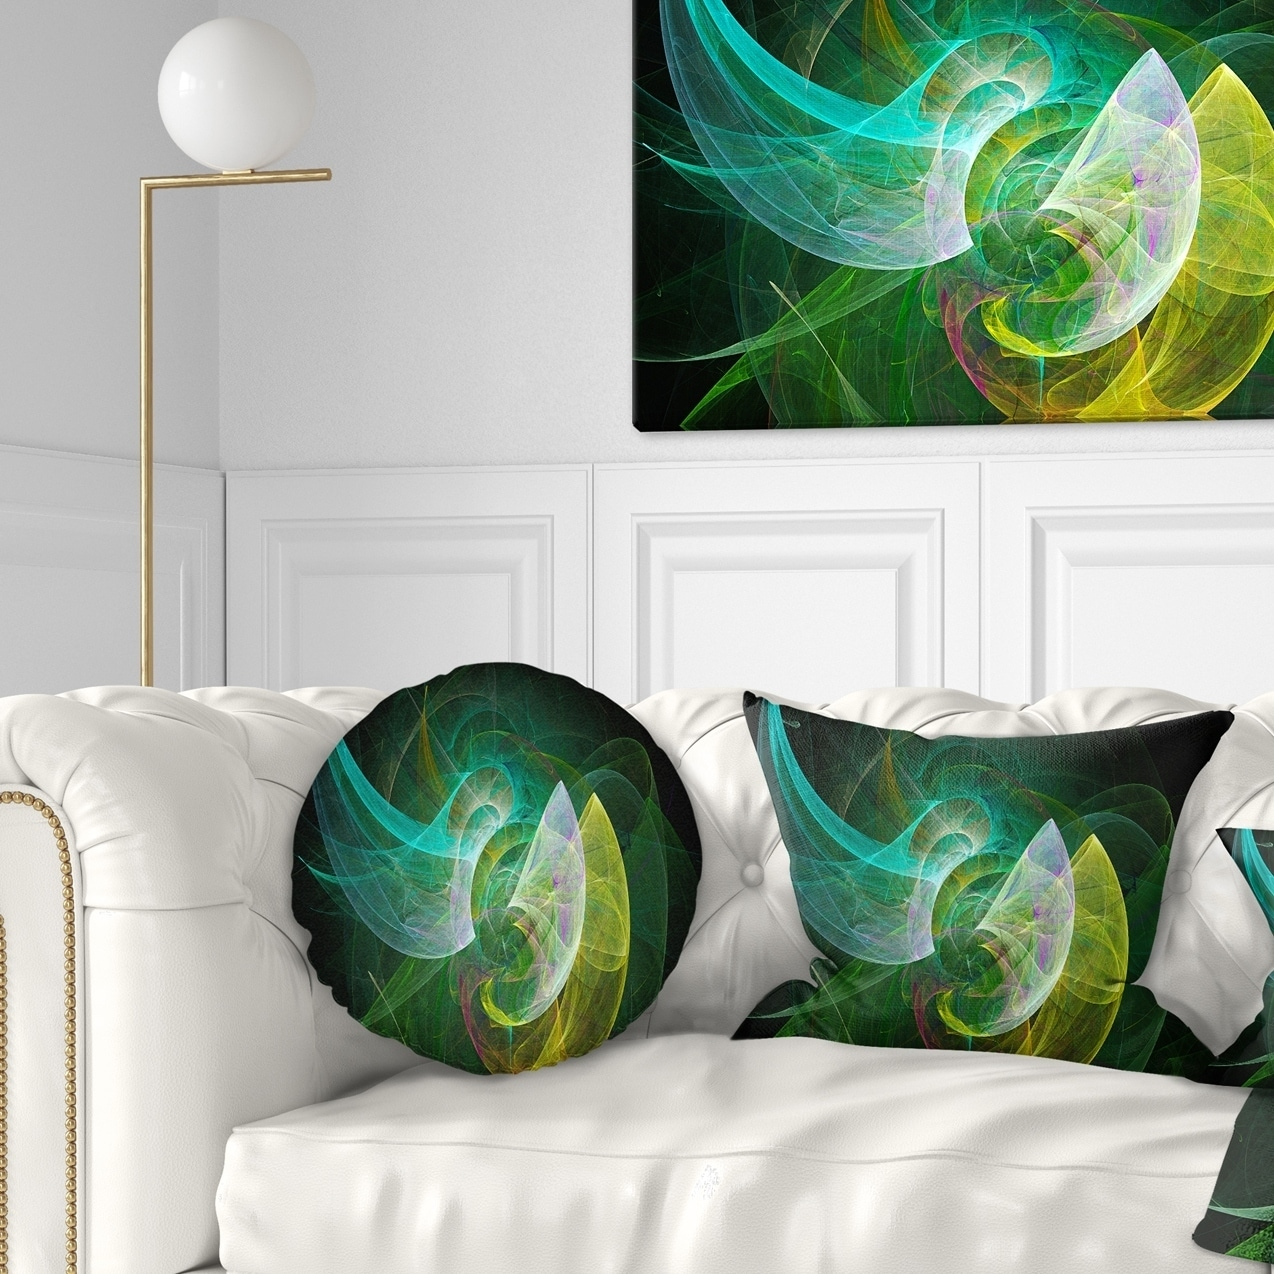 Green Mystic Psychedelic Texture Abstract Throw Pillow Walmart Com Walmart Com